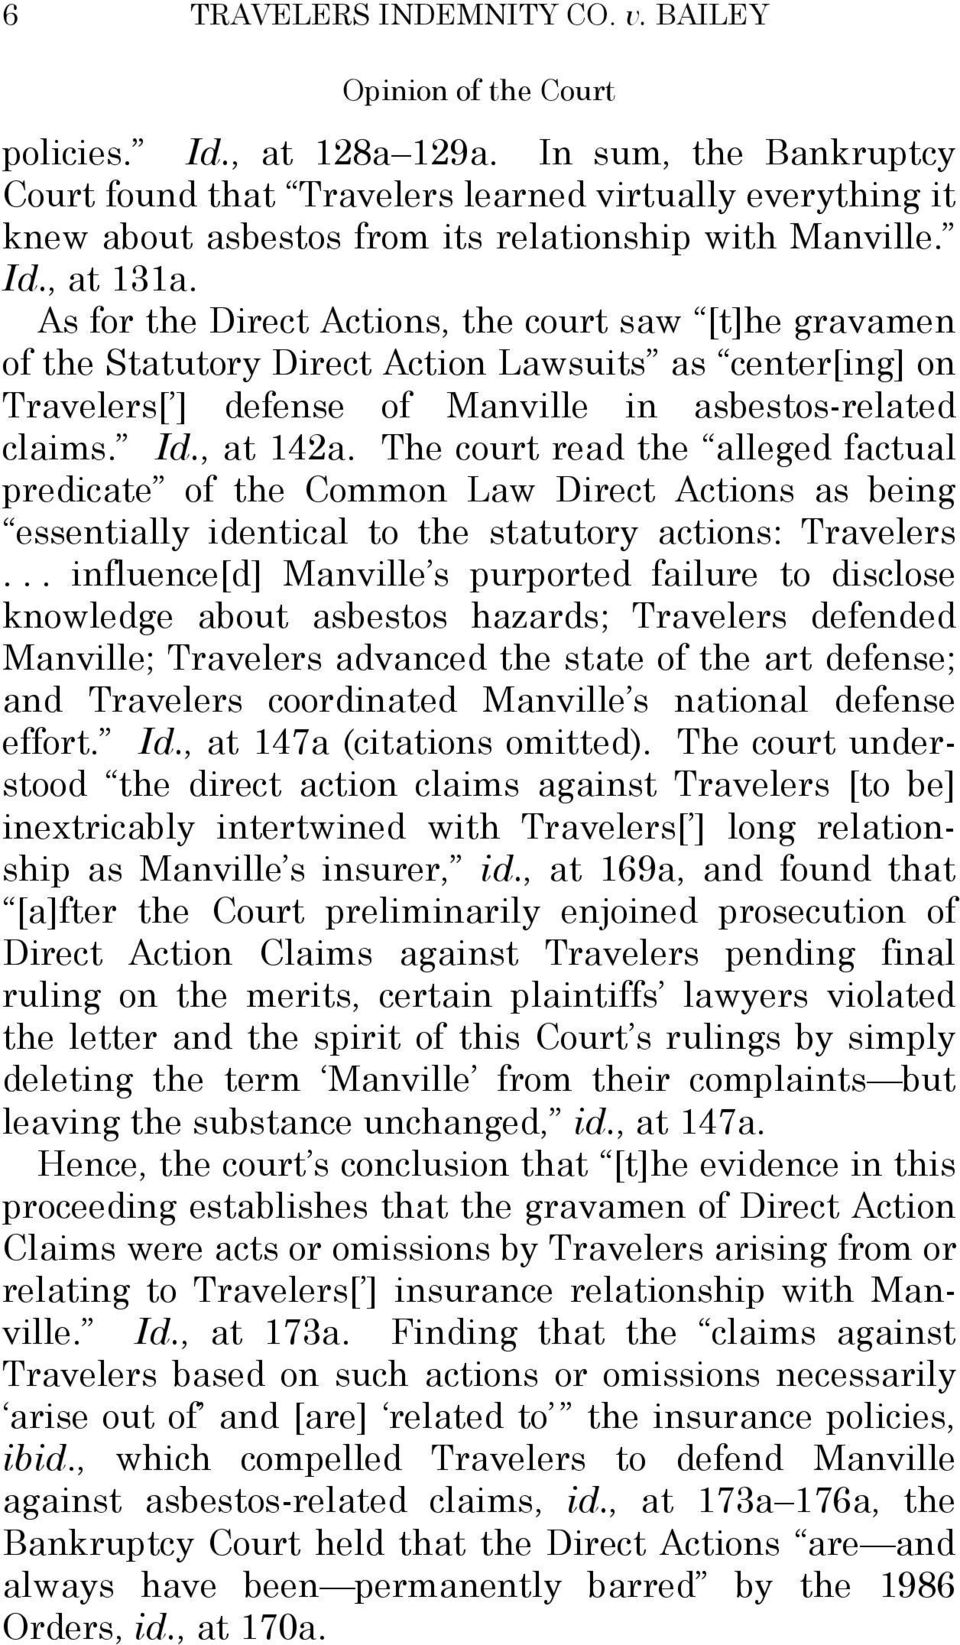 As for the Direct Actions, the court saw [t]he gravamen of the Statutory Direct Action Lawsuits as center[ing] on Travelers[ ] defense of Manville in asbestos-related claims. Id., at 142a.